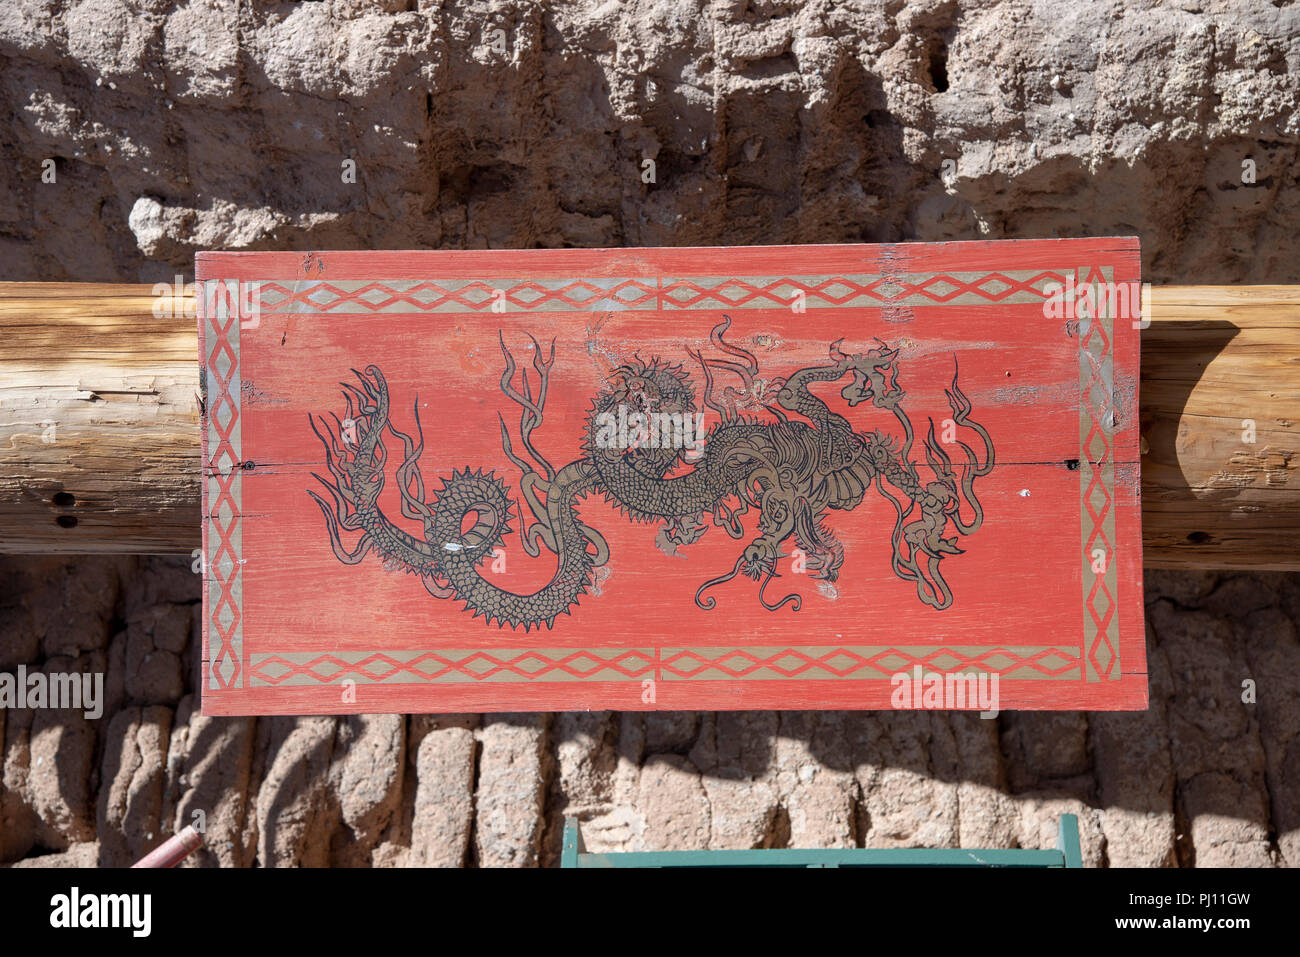 Chinese dragon painted on wooden sign with red, black and gold paint. - Stock Image